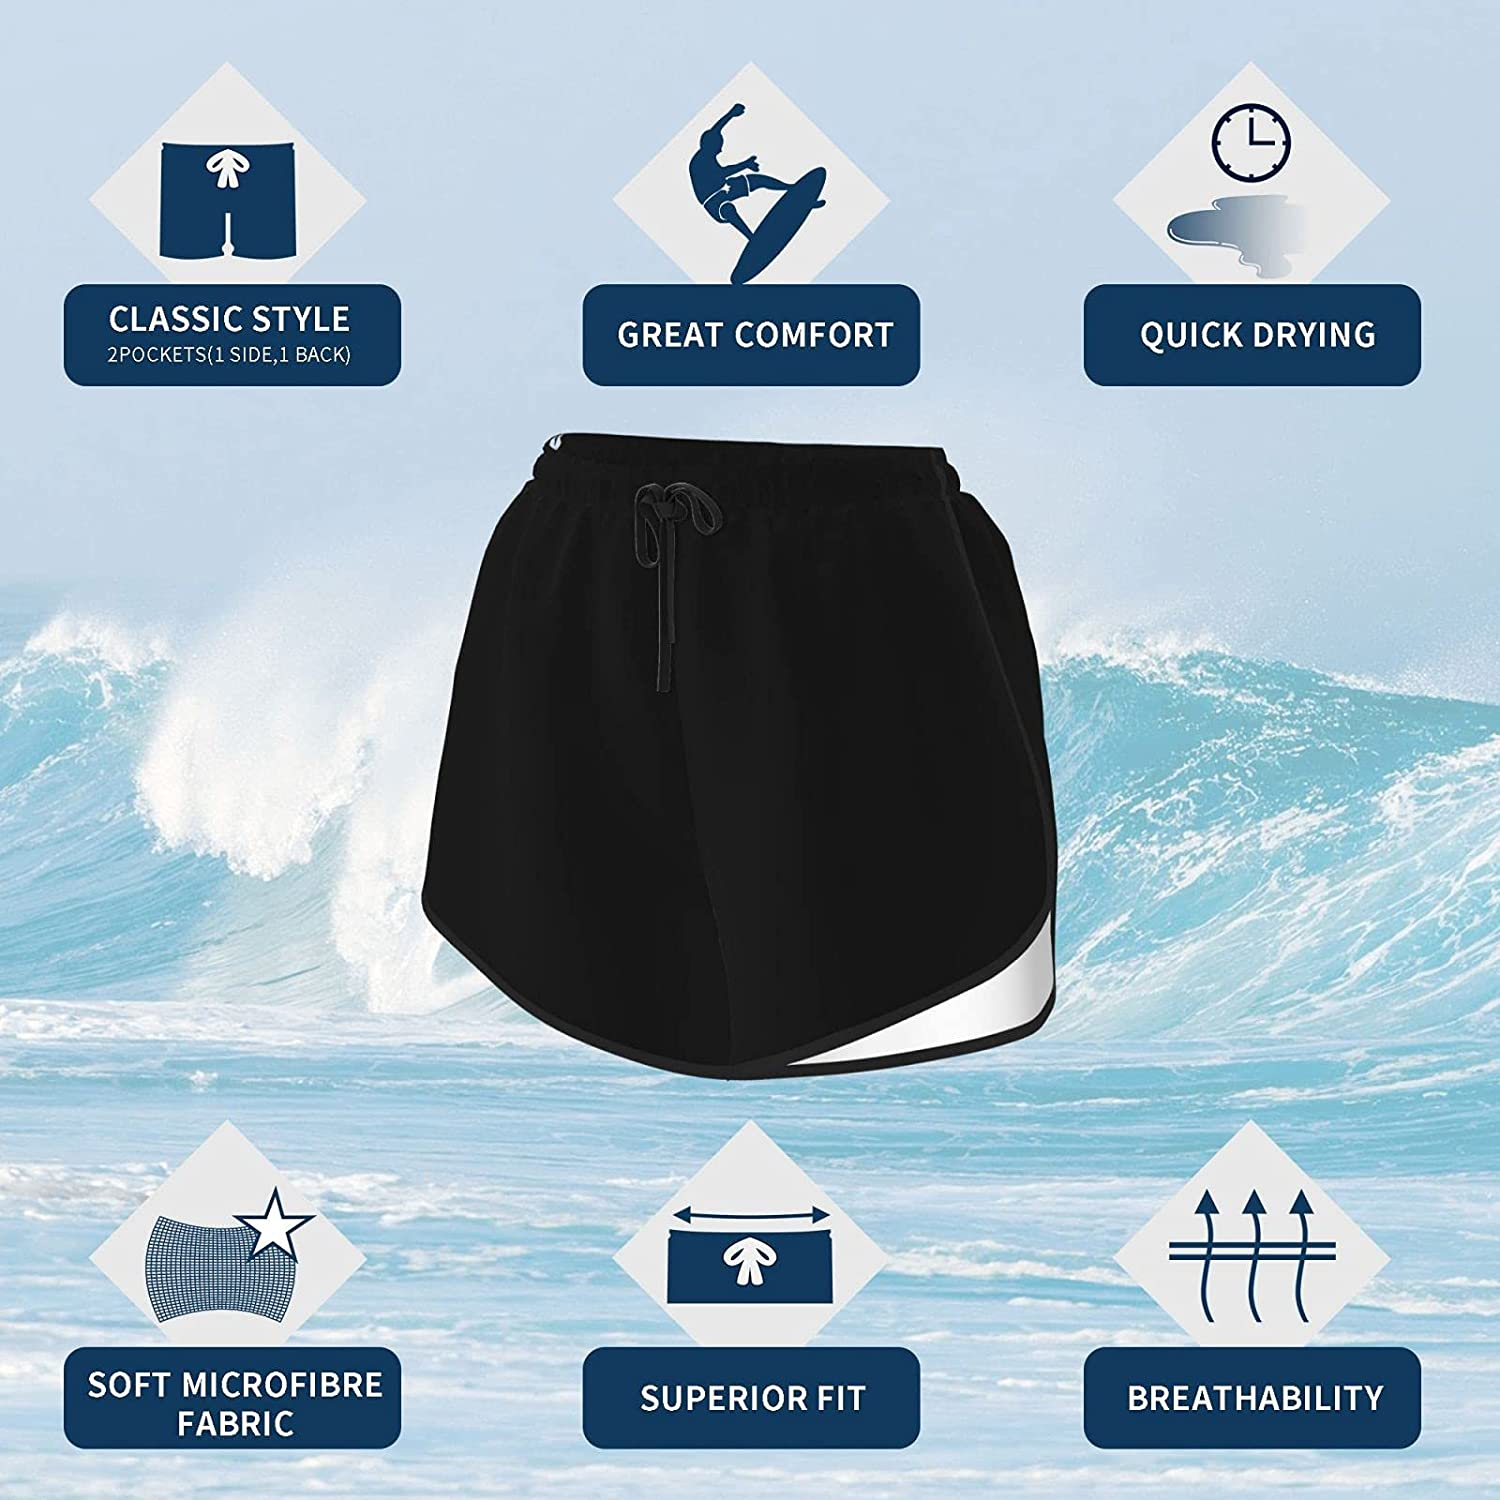 Women's Casual Elastic Waist Striped Summer Beach Shorts,Various Patches of Denim in Sea with Sailor Knot Rope On Foreground Image Art XL